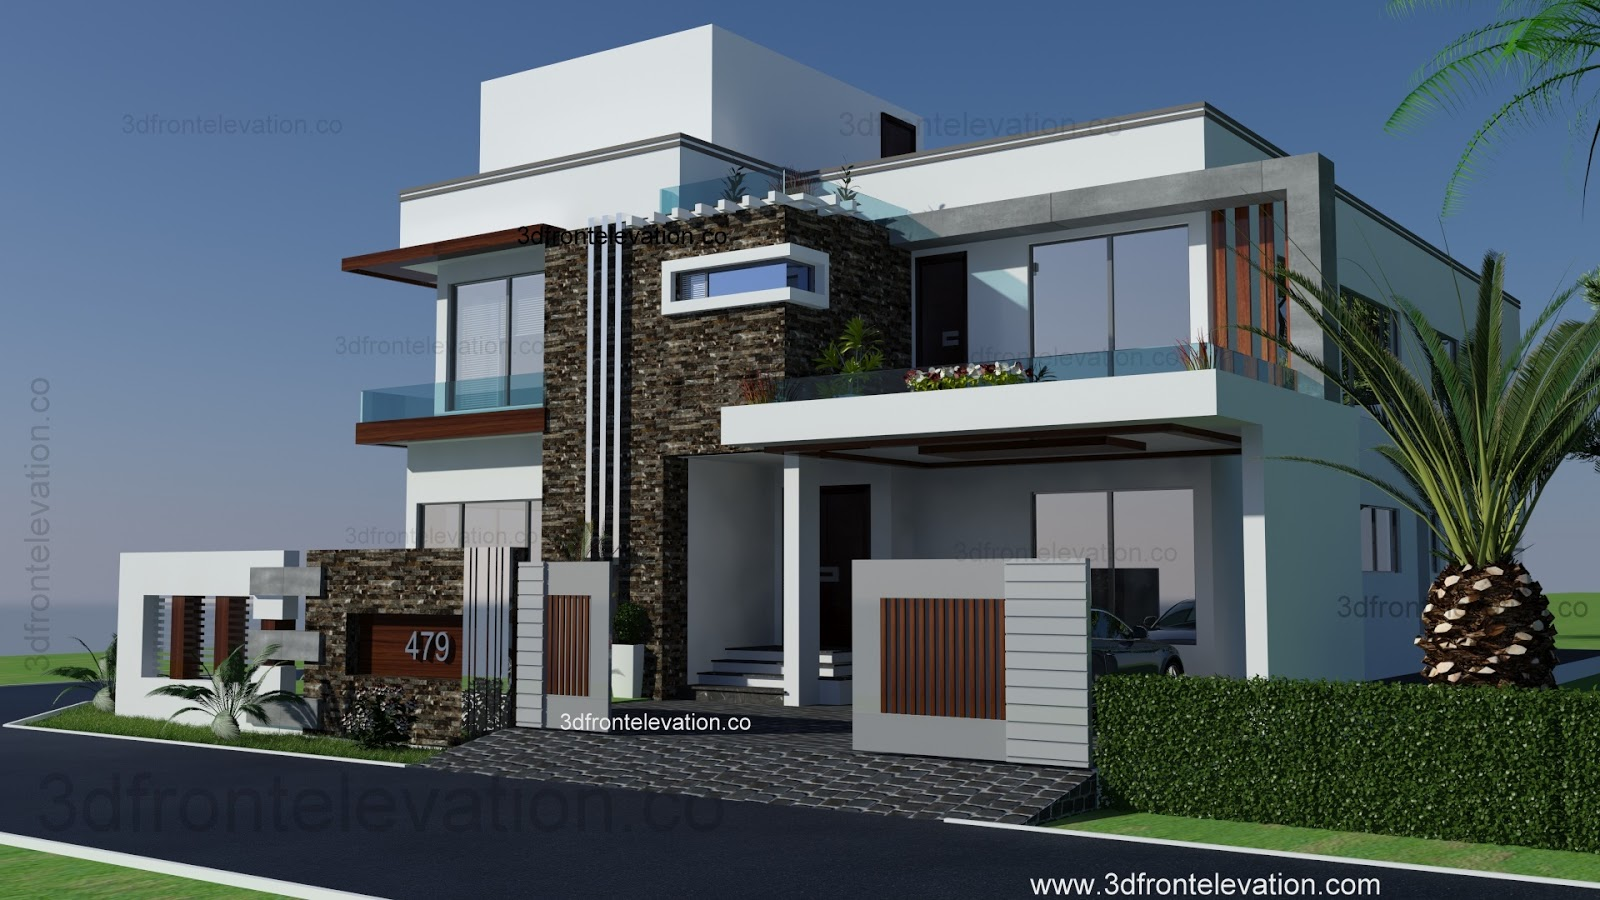 3d front portfolio - Beautiful front designs of homes ...